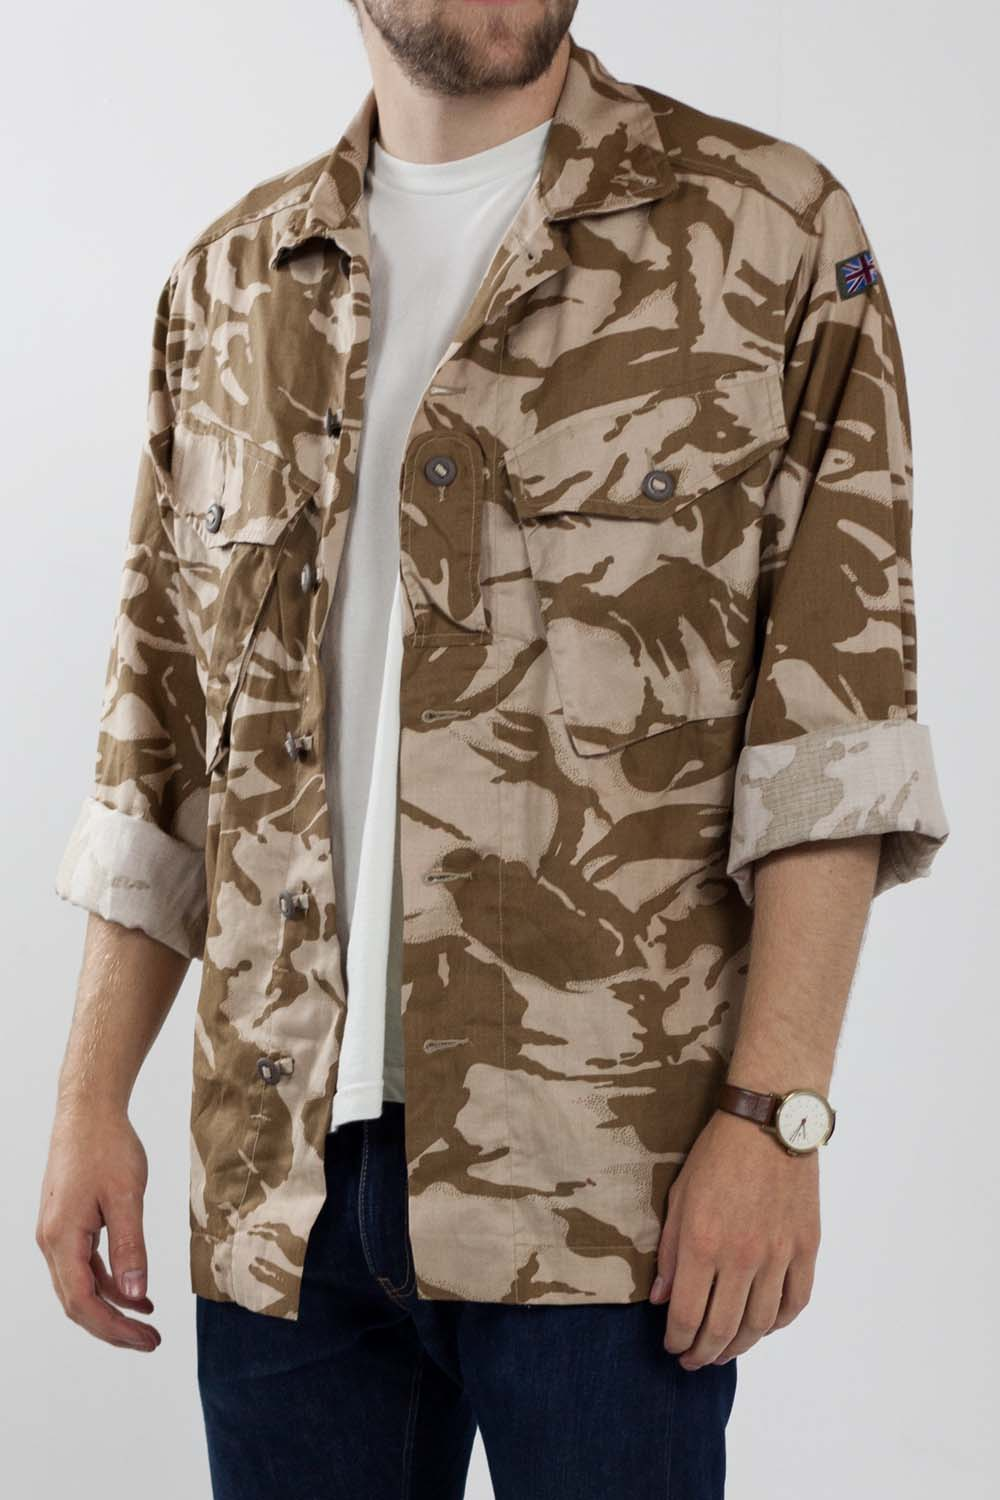 British Desert Combat Shirt